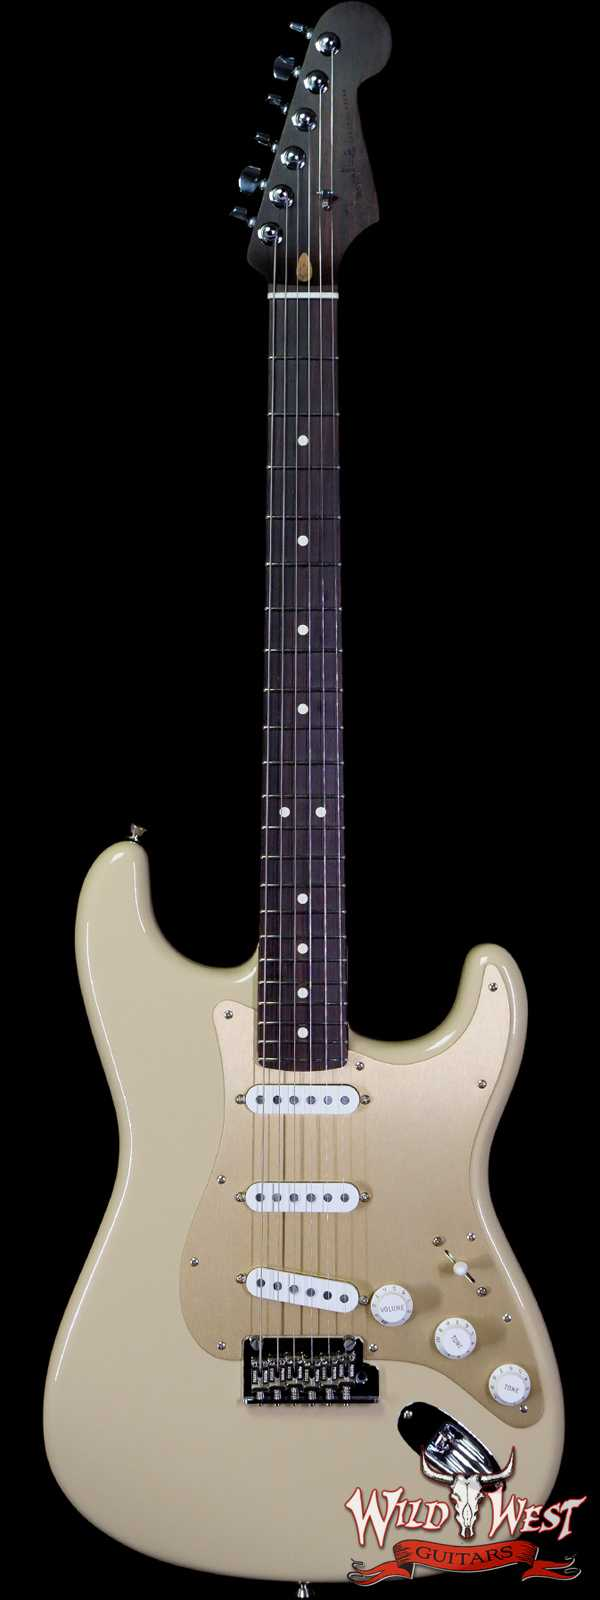 Fender USA Limited Edition American Professional Stratocaster Solid Rosewood Neck Desert Sand